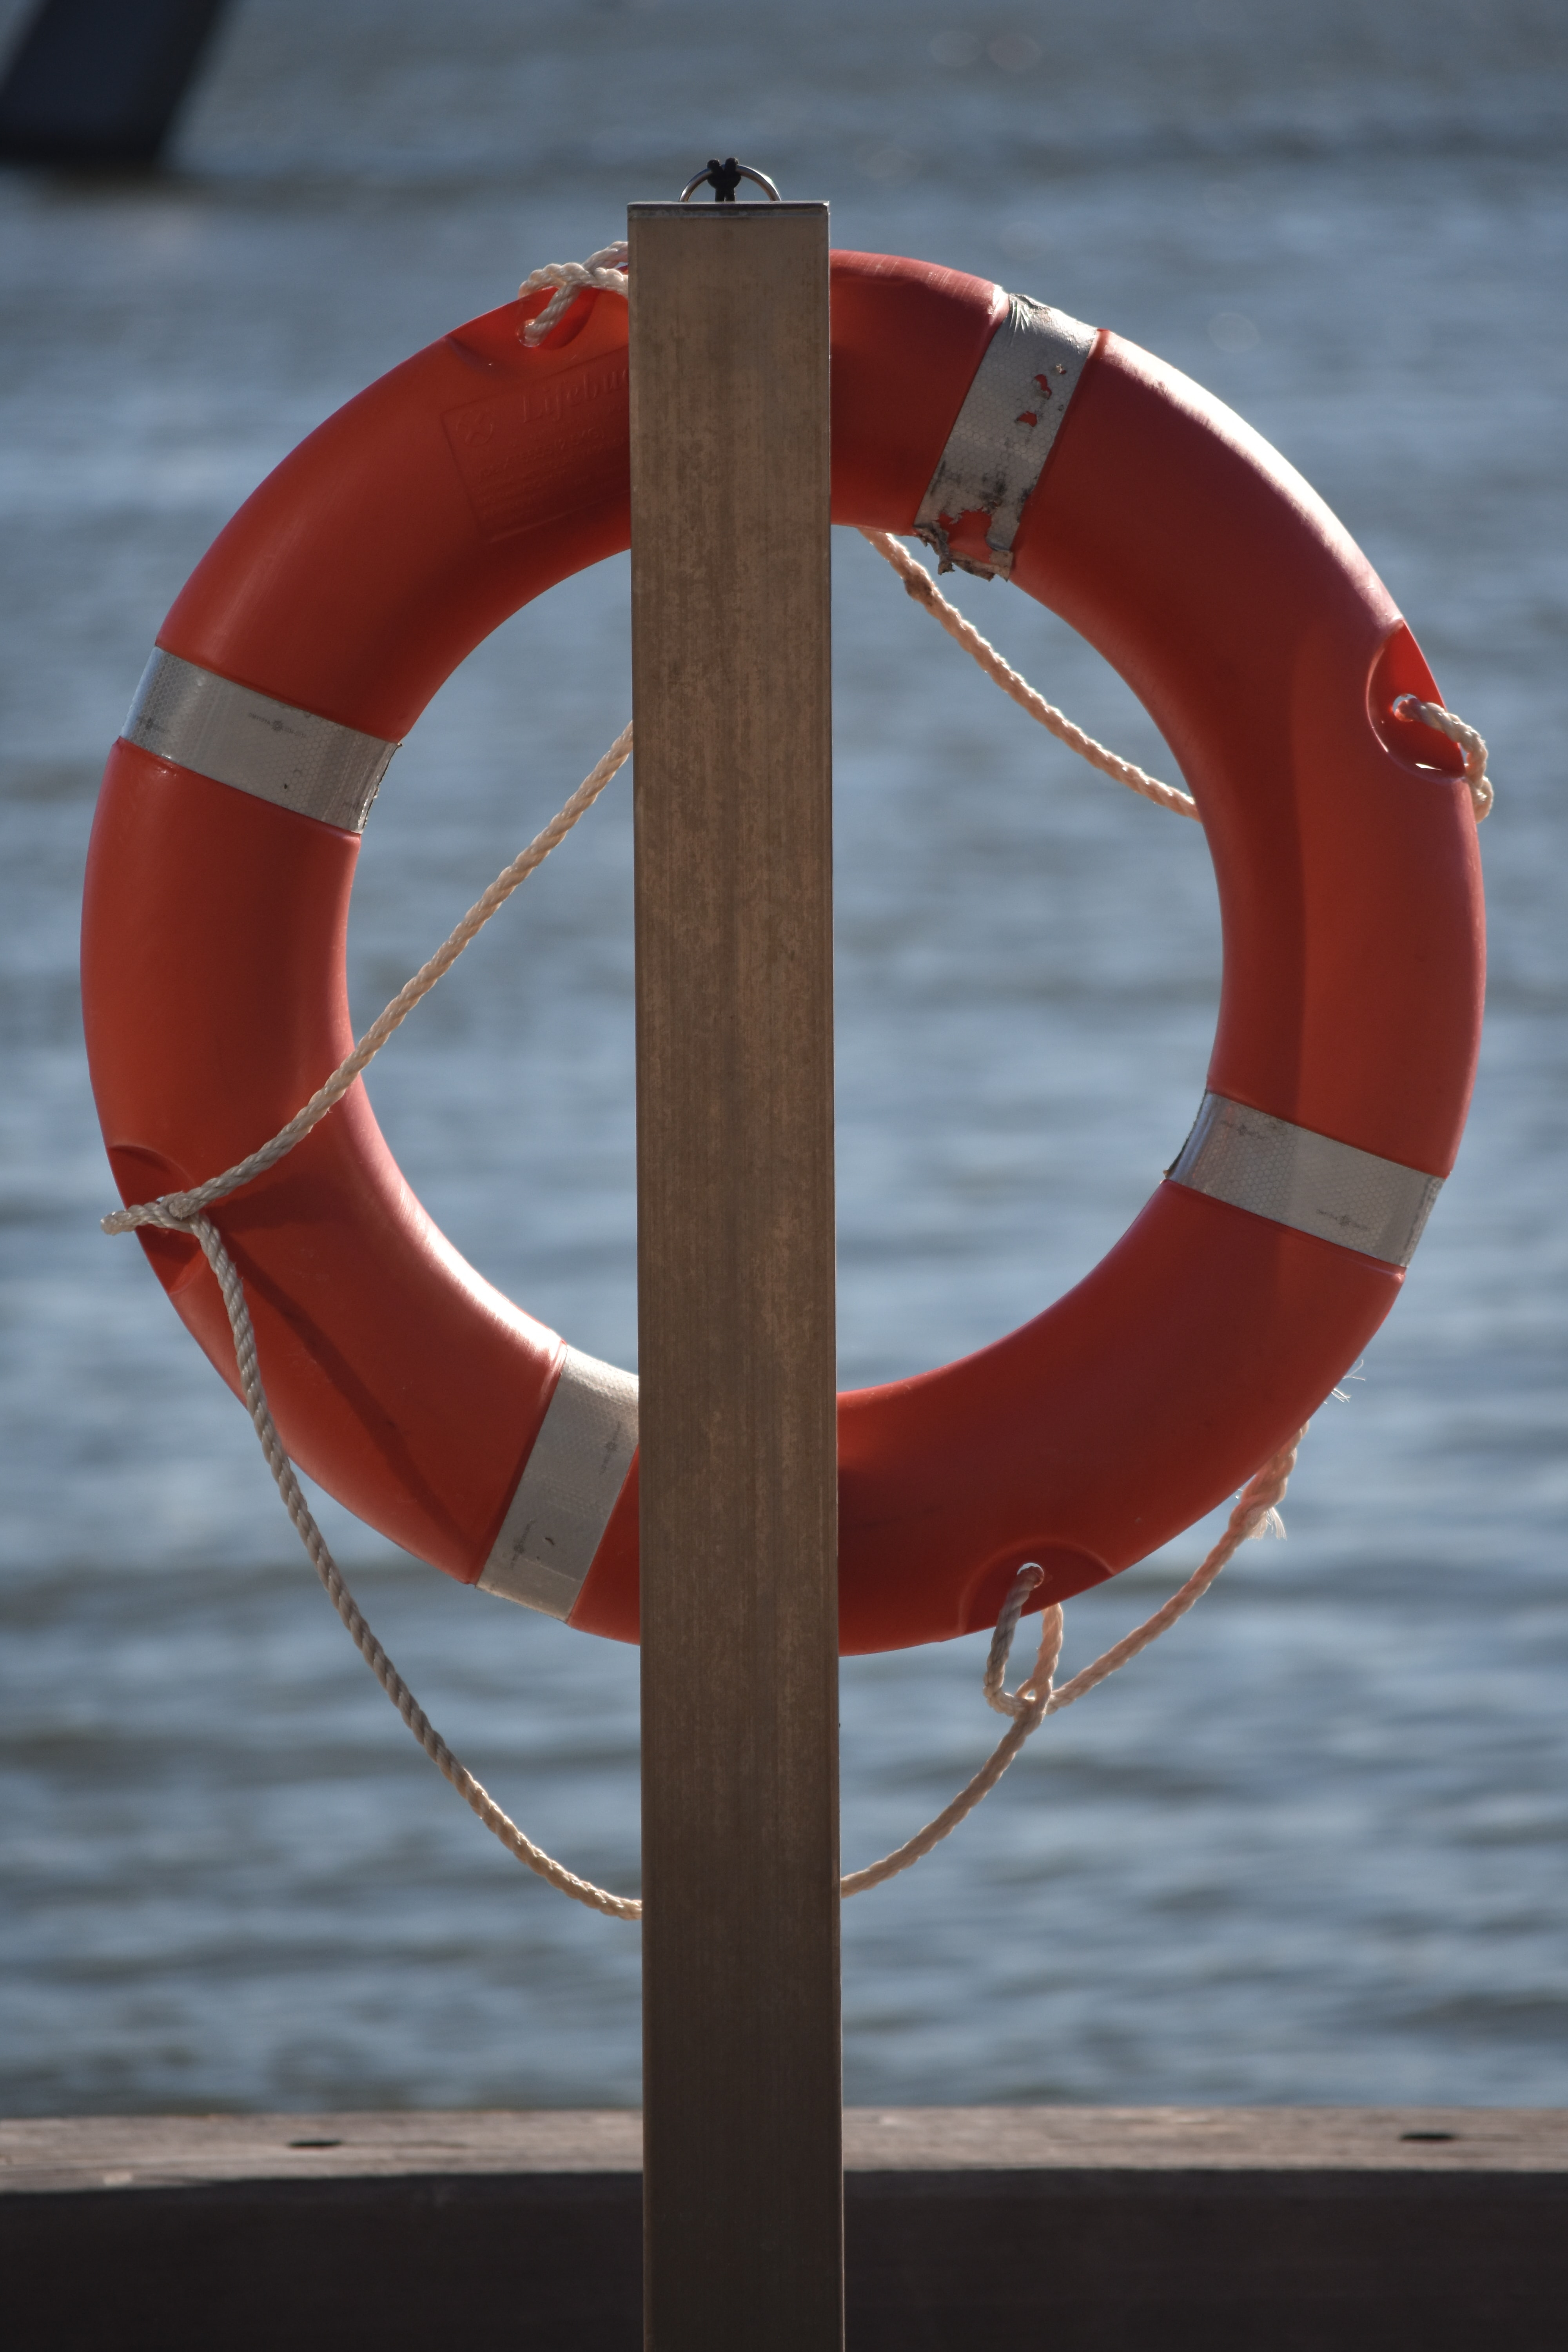 Oxendine Drowns While Smalley is Rescued